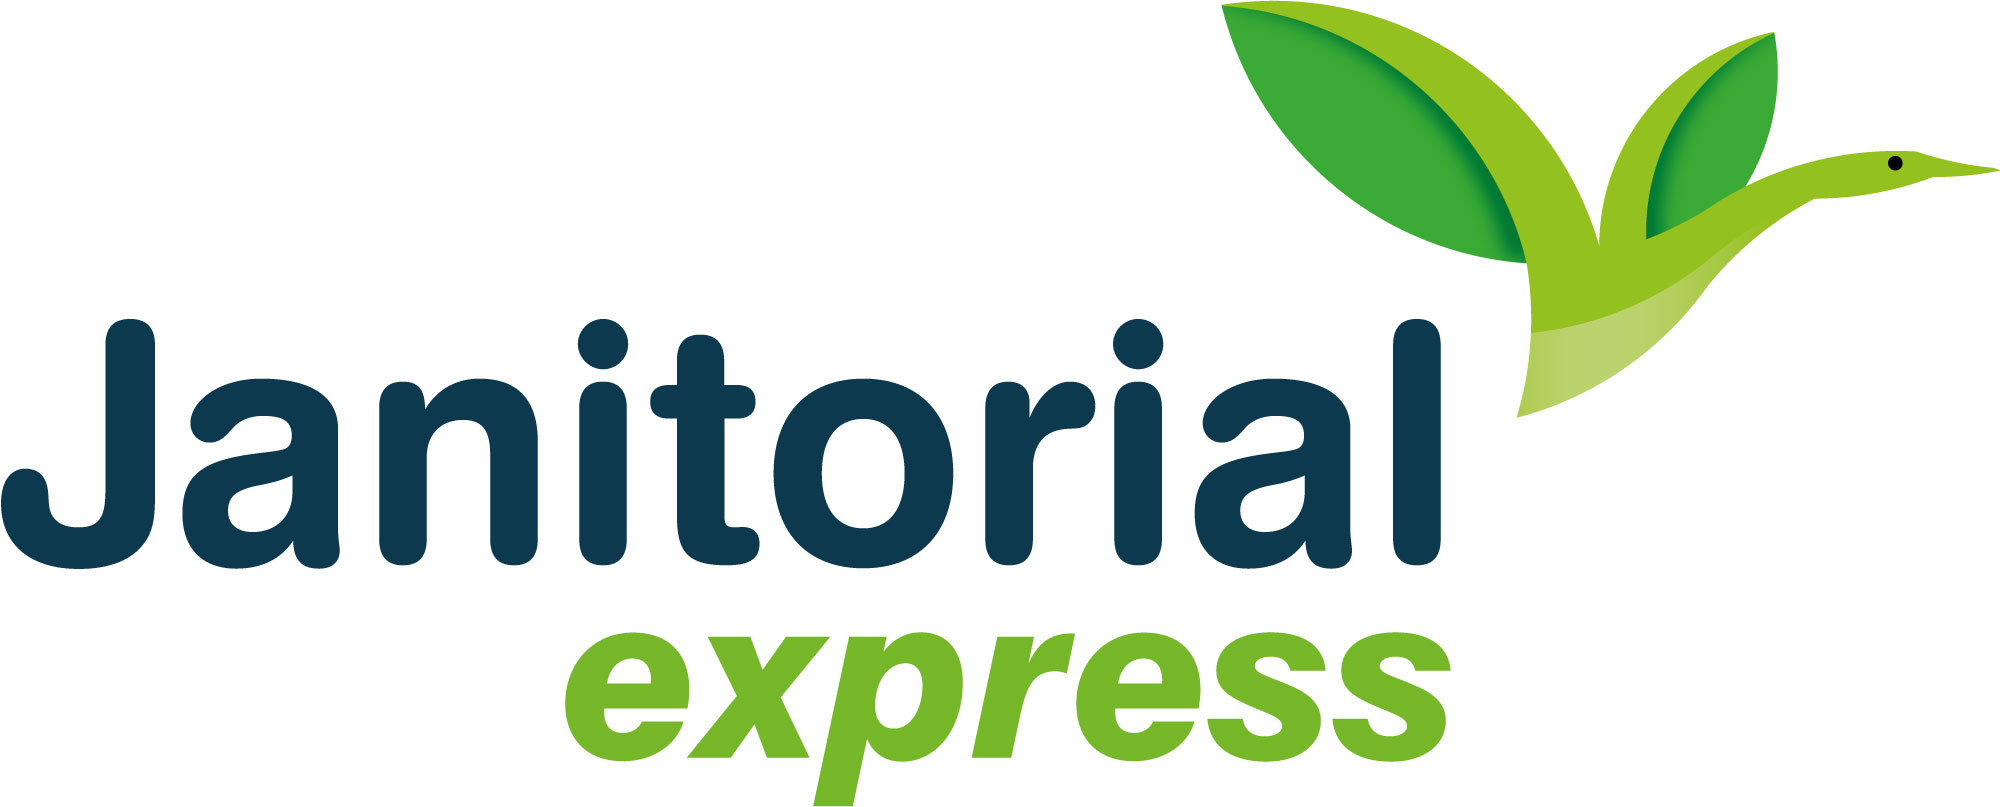 Eco Janitorial Express